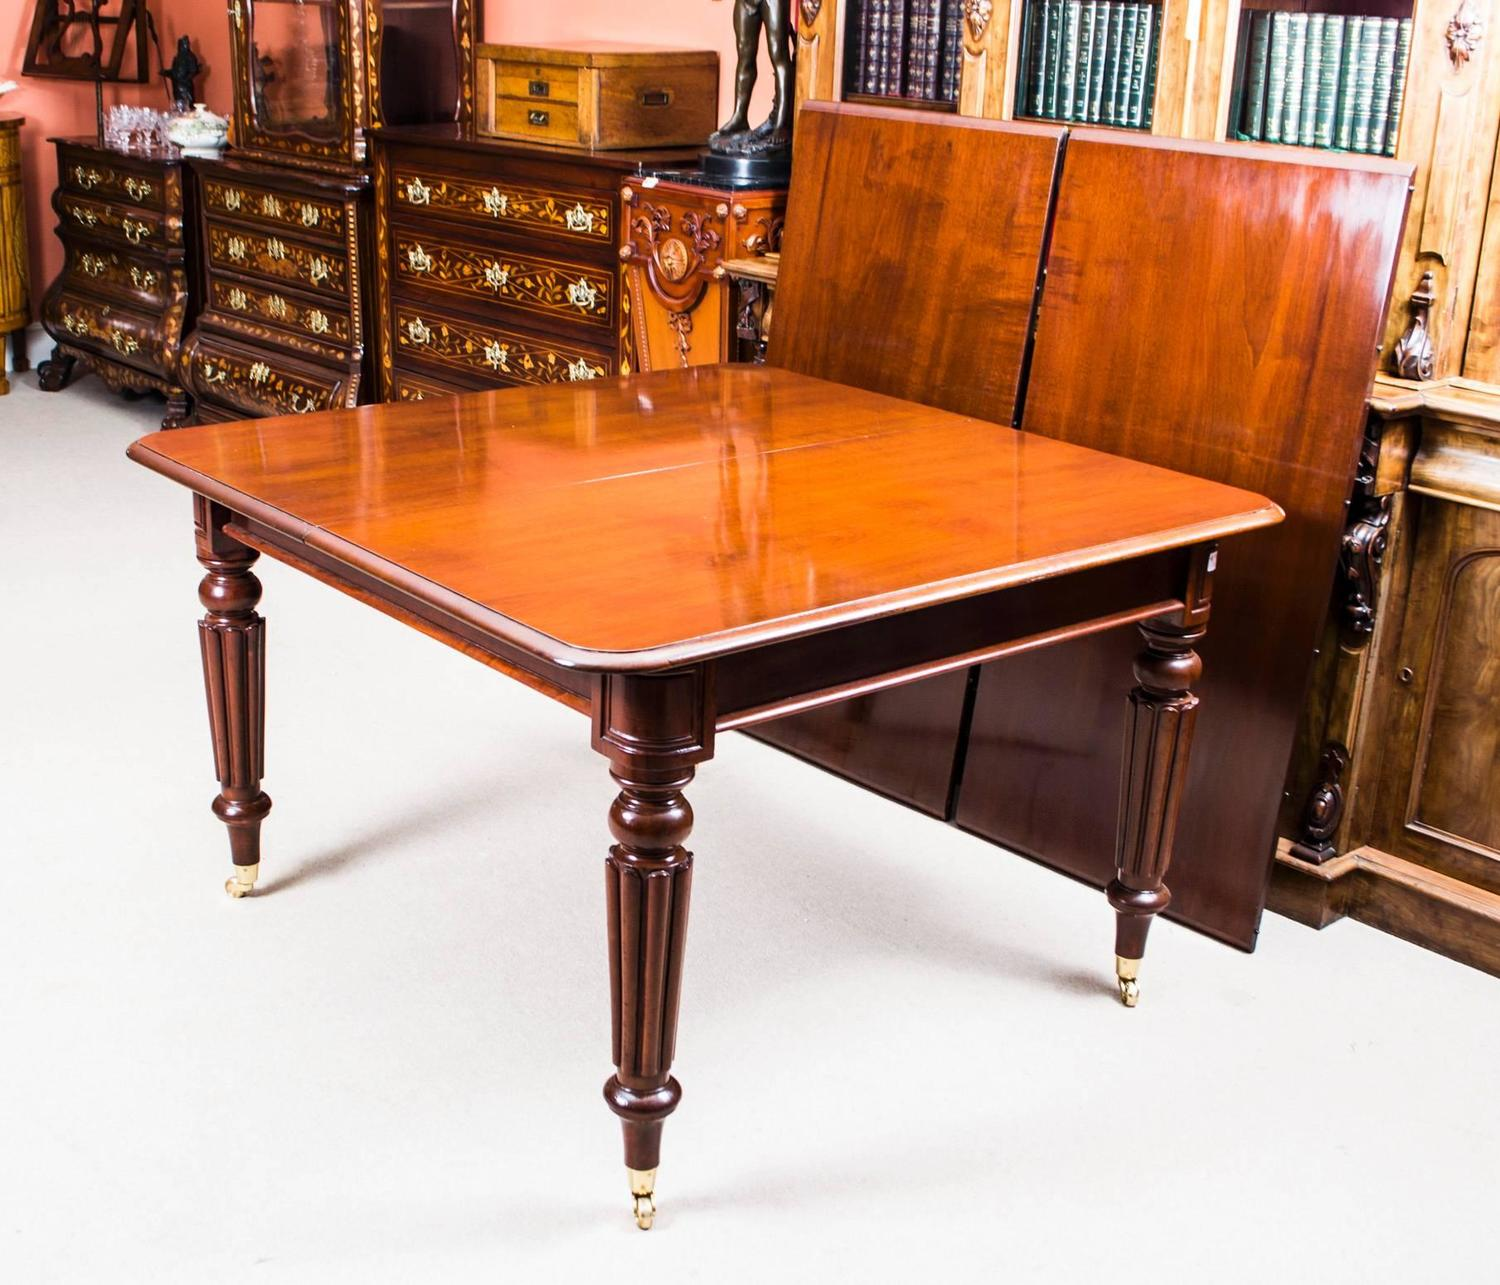 Antique Regency Mahogany Dining Table Manner Of Gillows Circa 1820 At 1stdibs